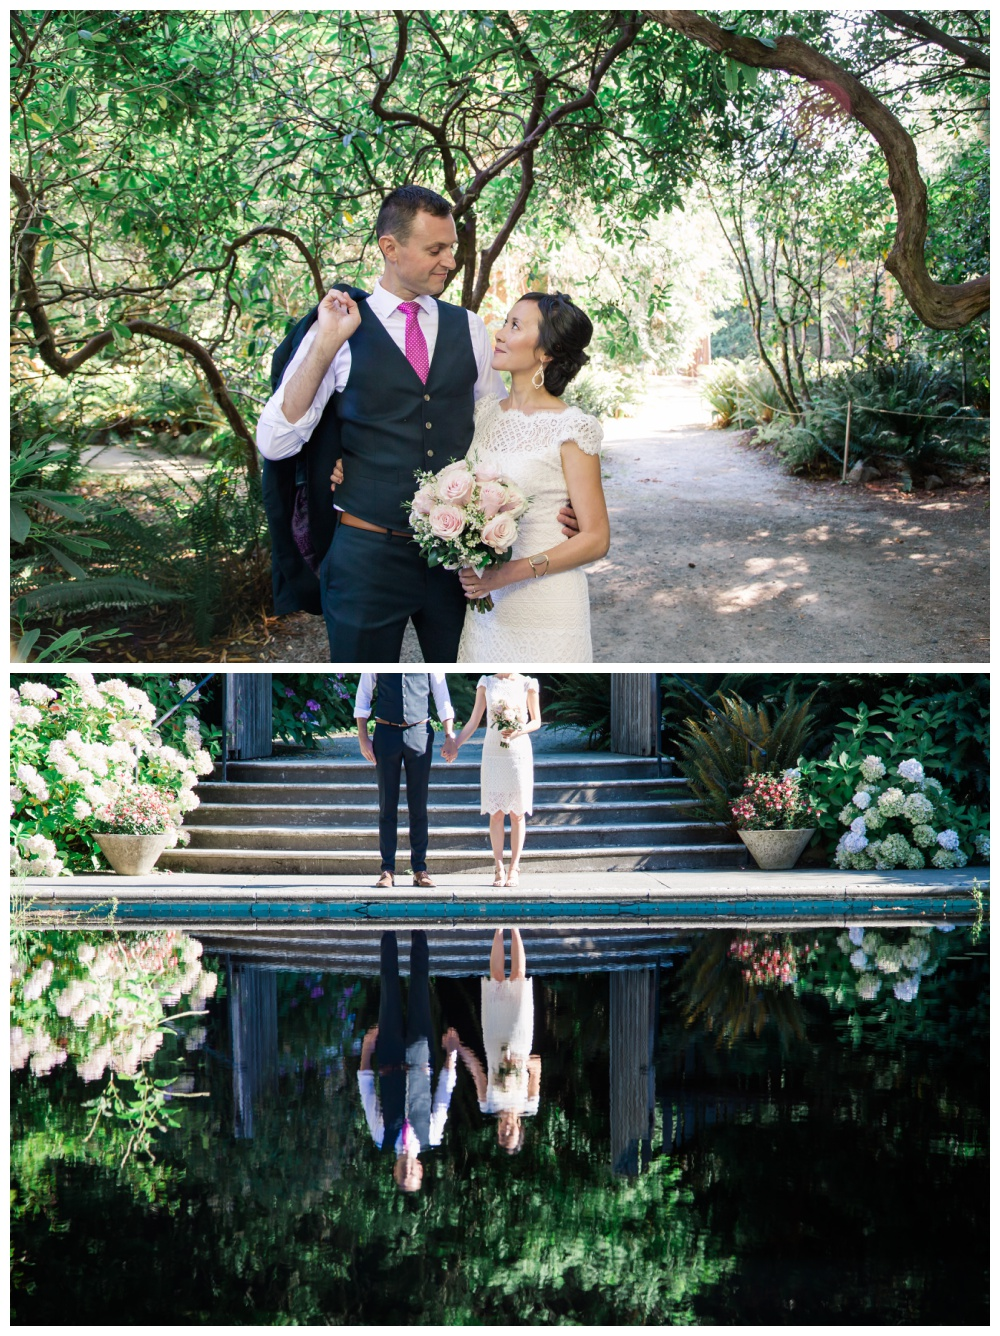 Bride and groom at Milner Gardens - Intimate Wedding Vendors Qualiucm